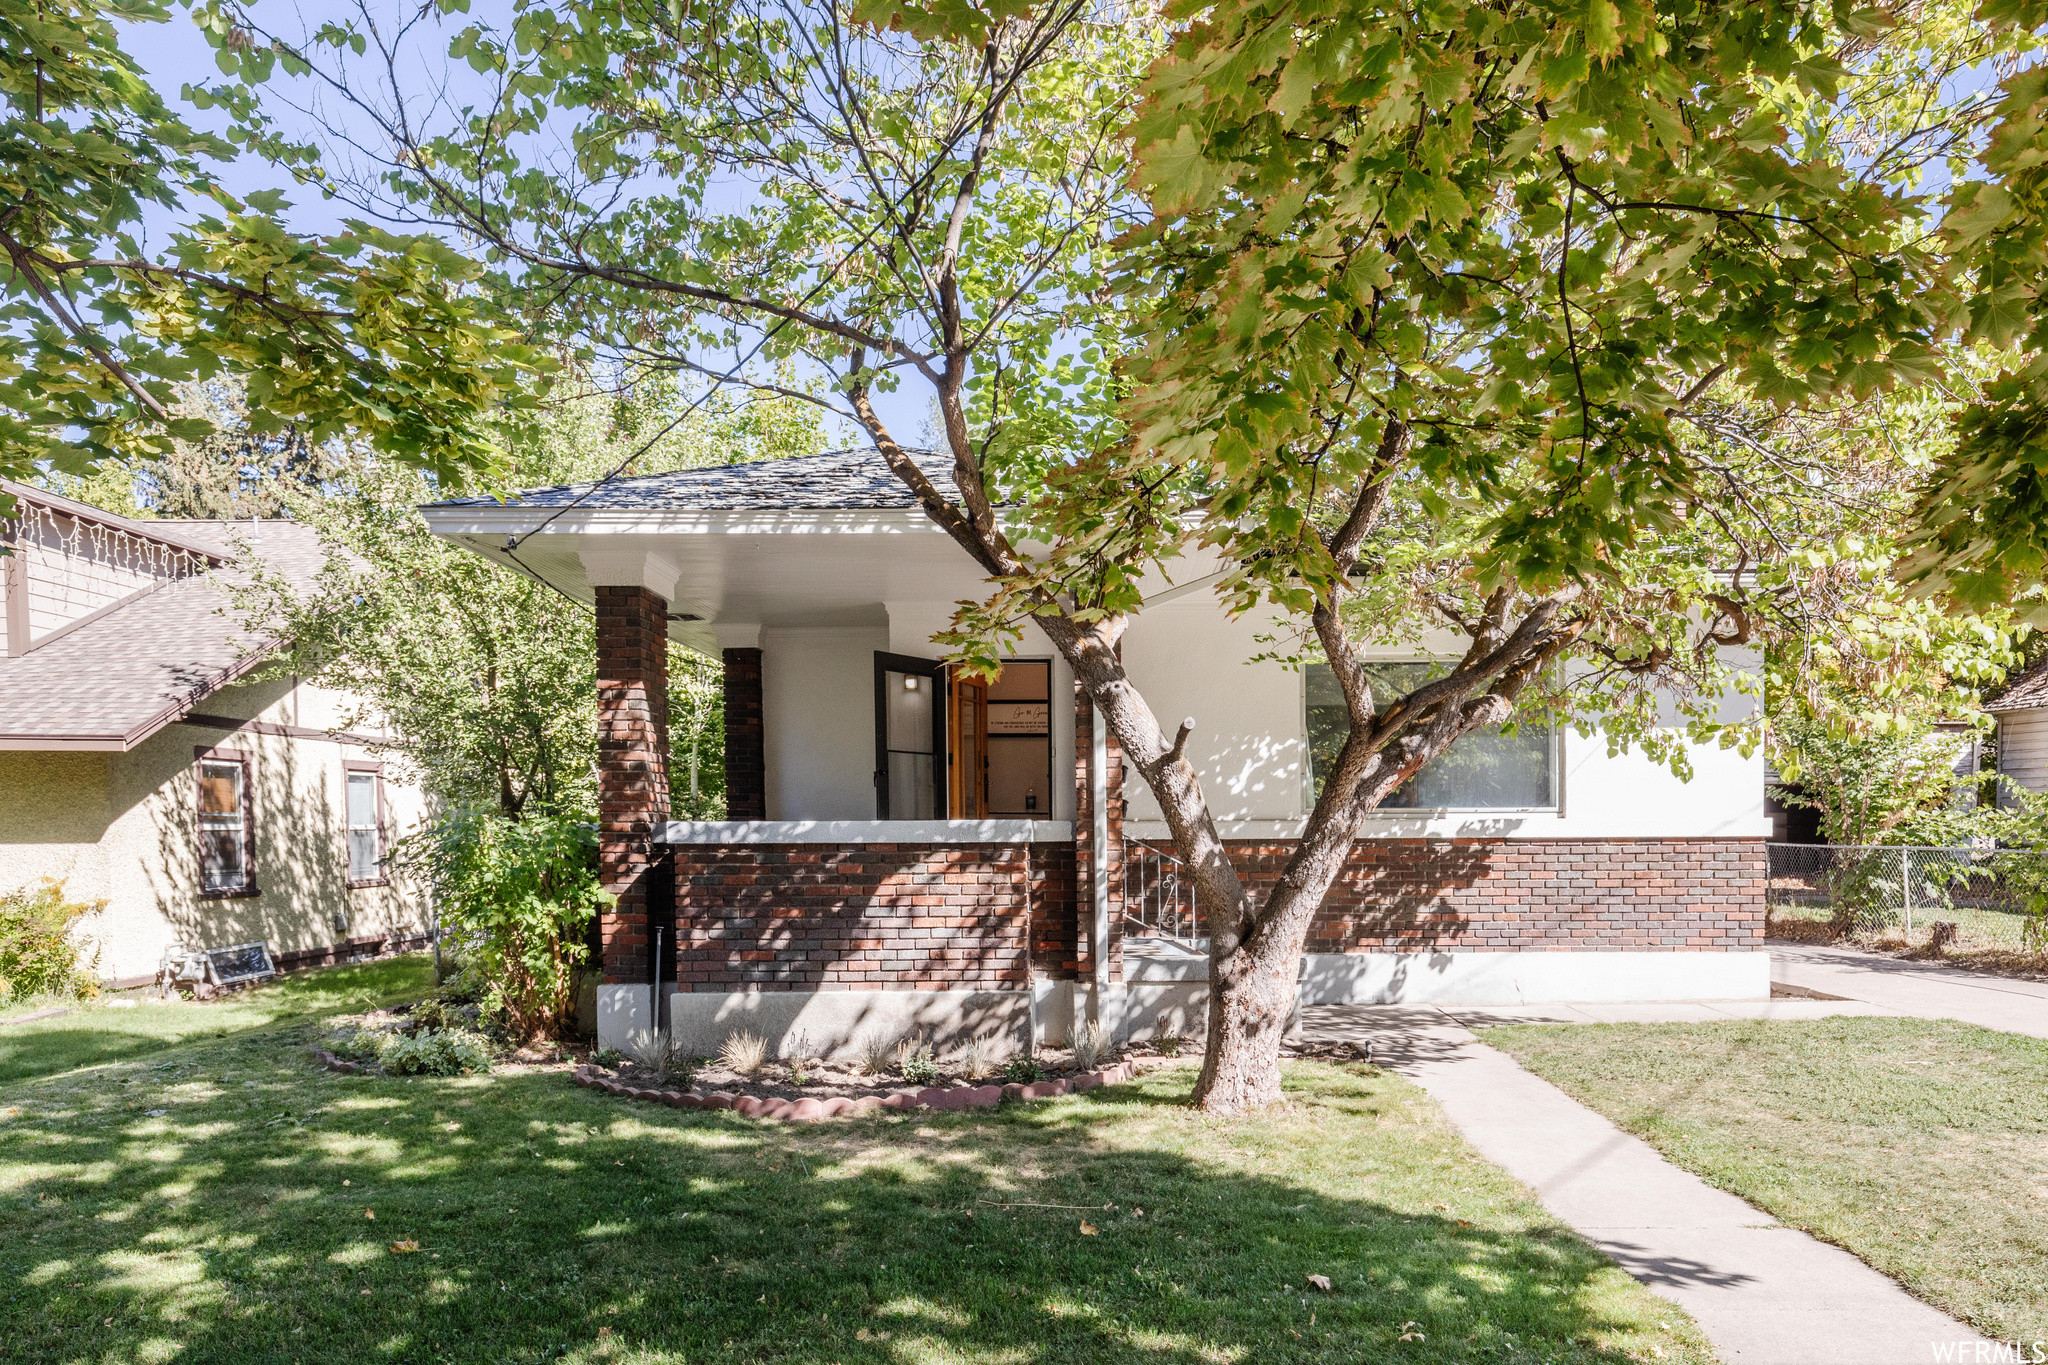 3-Bedroom House In Downtown Logan